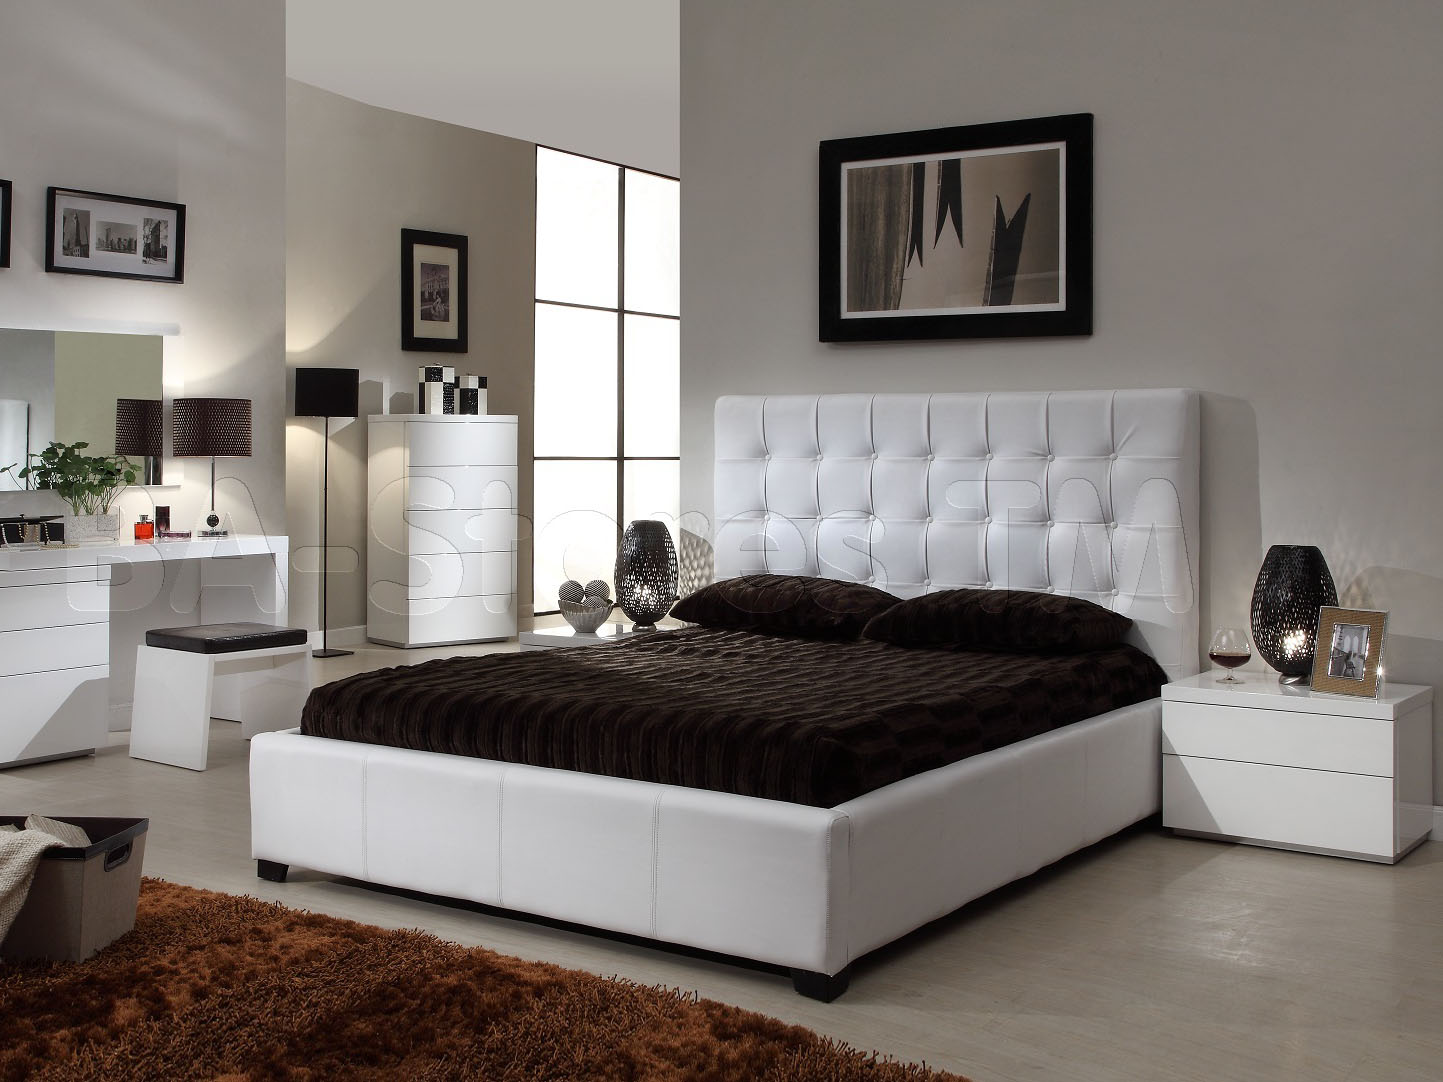 bedroom decorating ideas mirrored furniture photo - 5